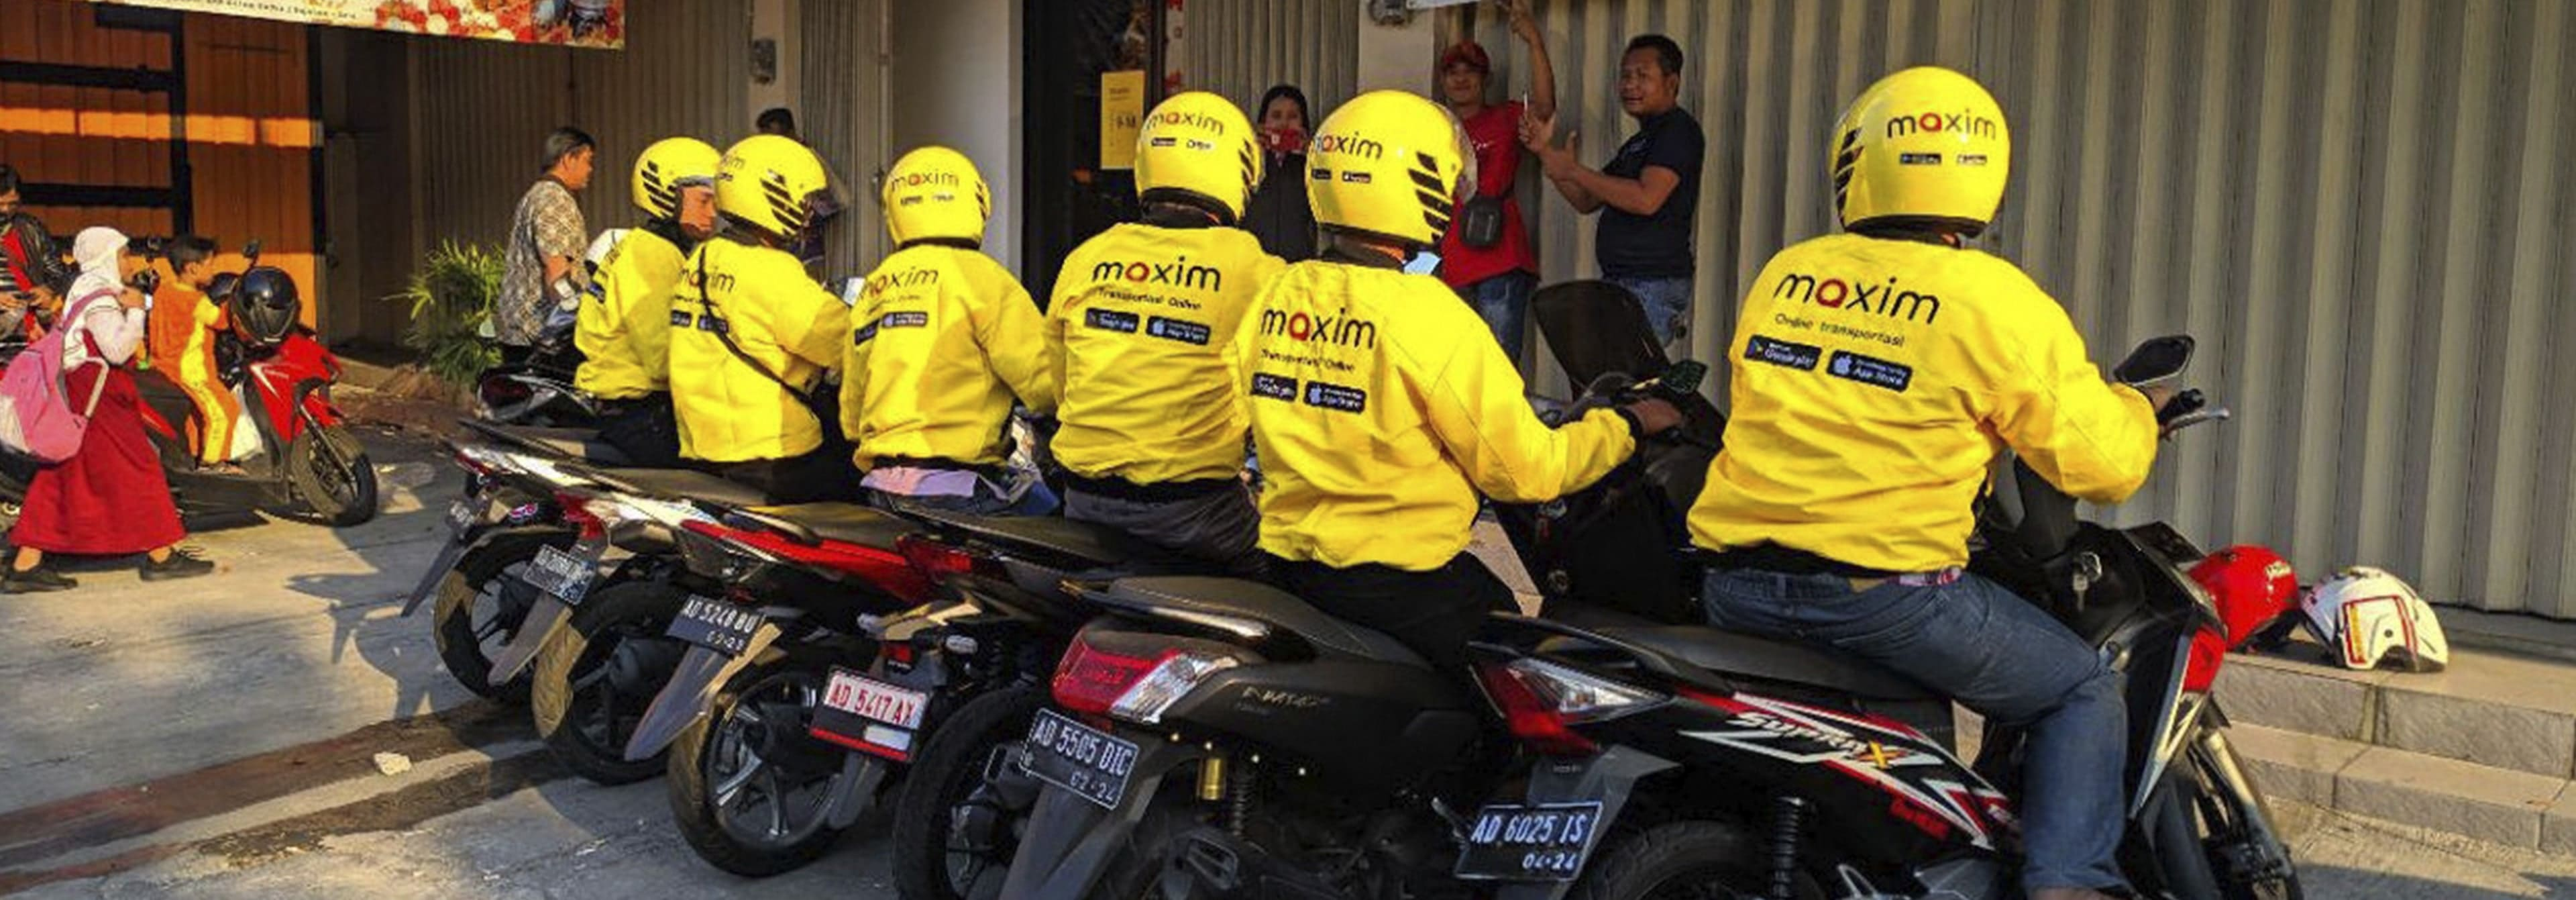 Transporte- moto taxi Indonesia